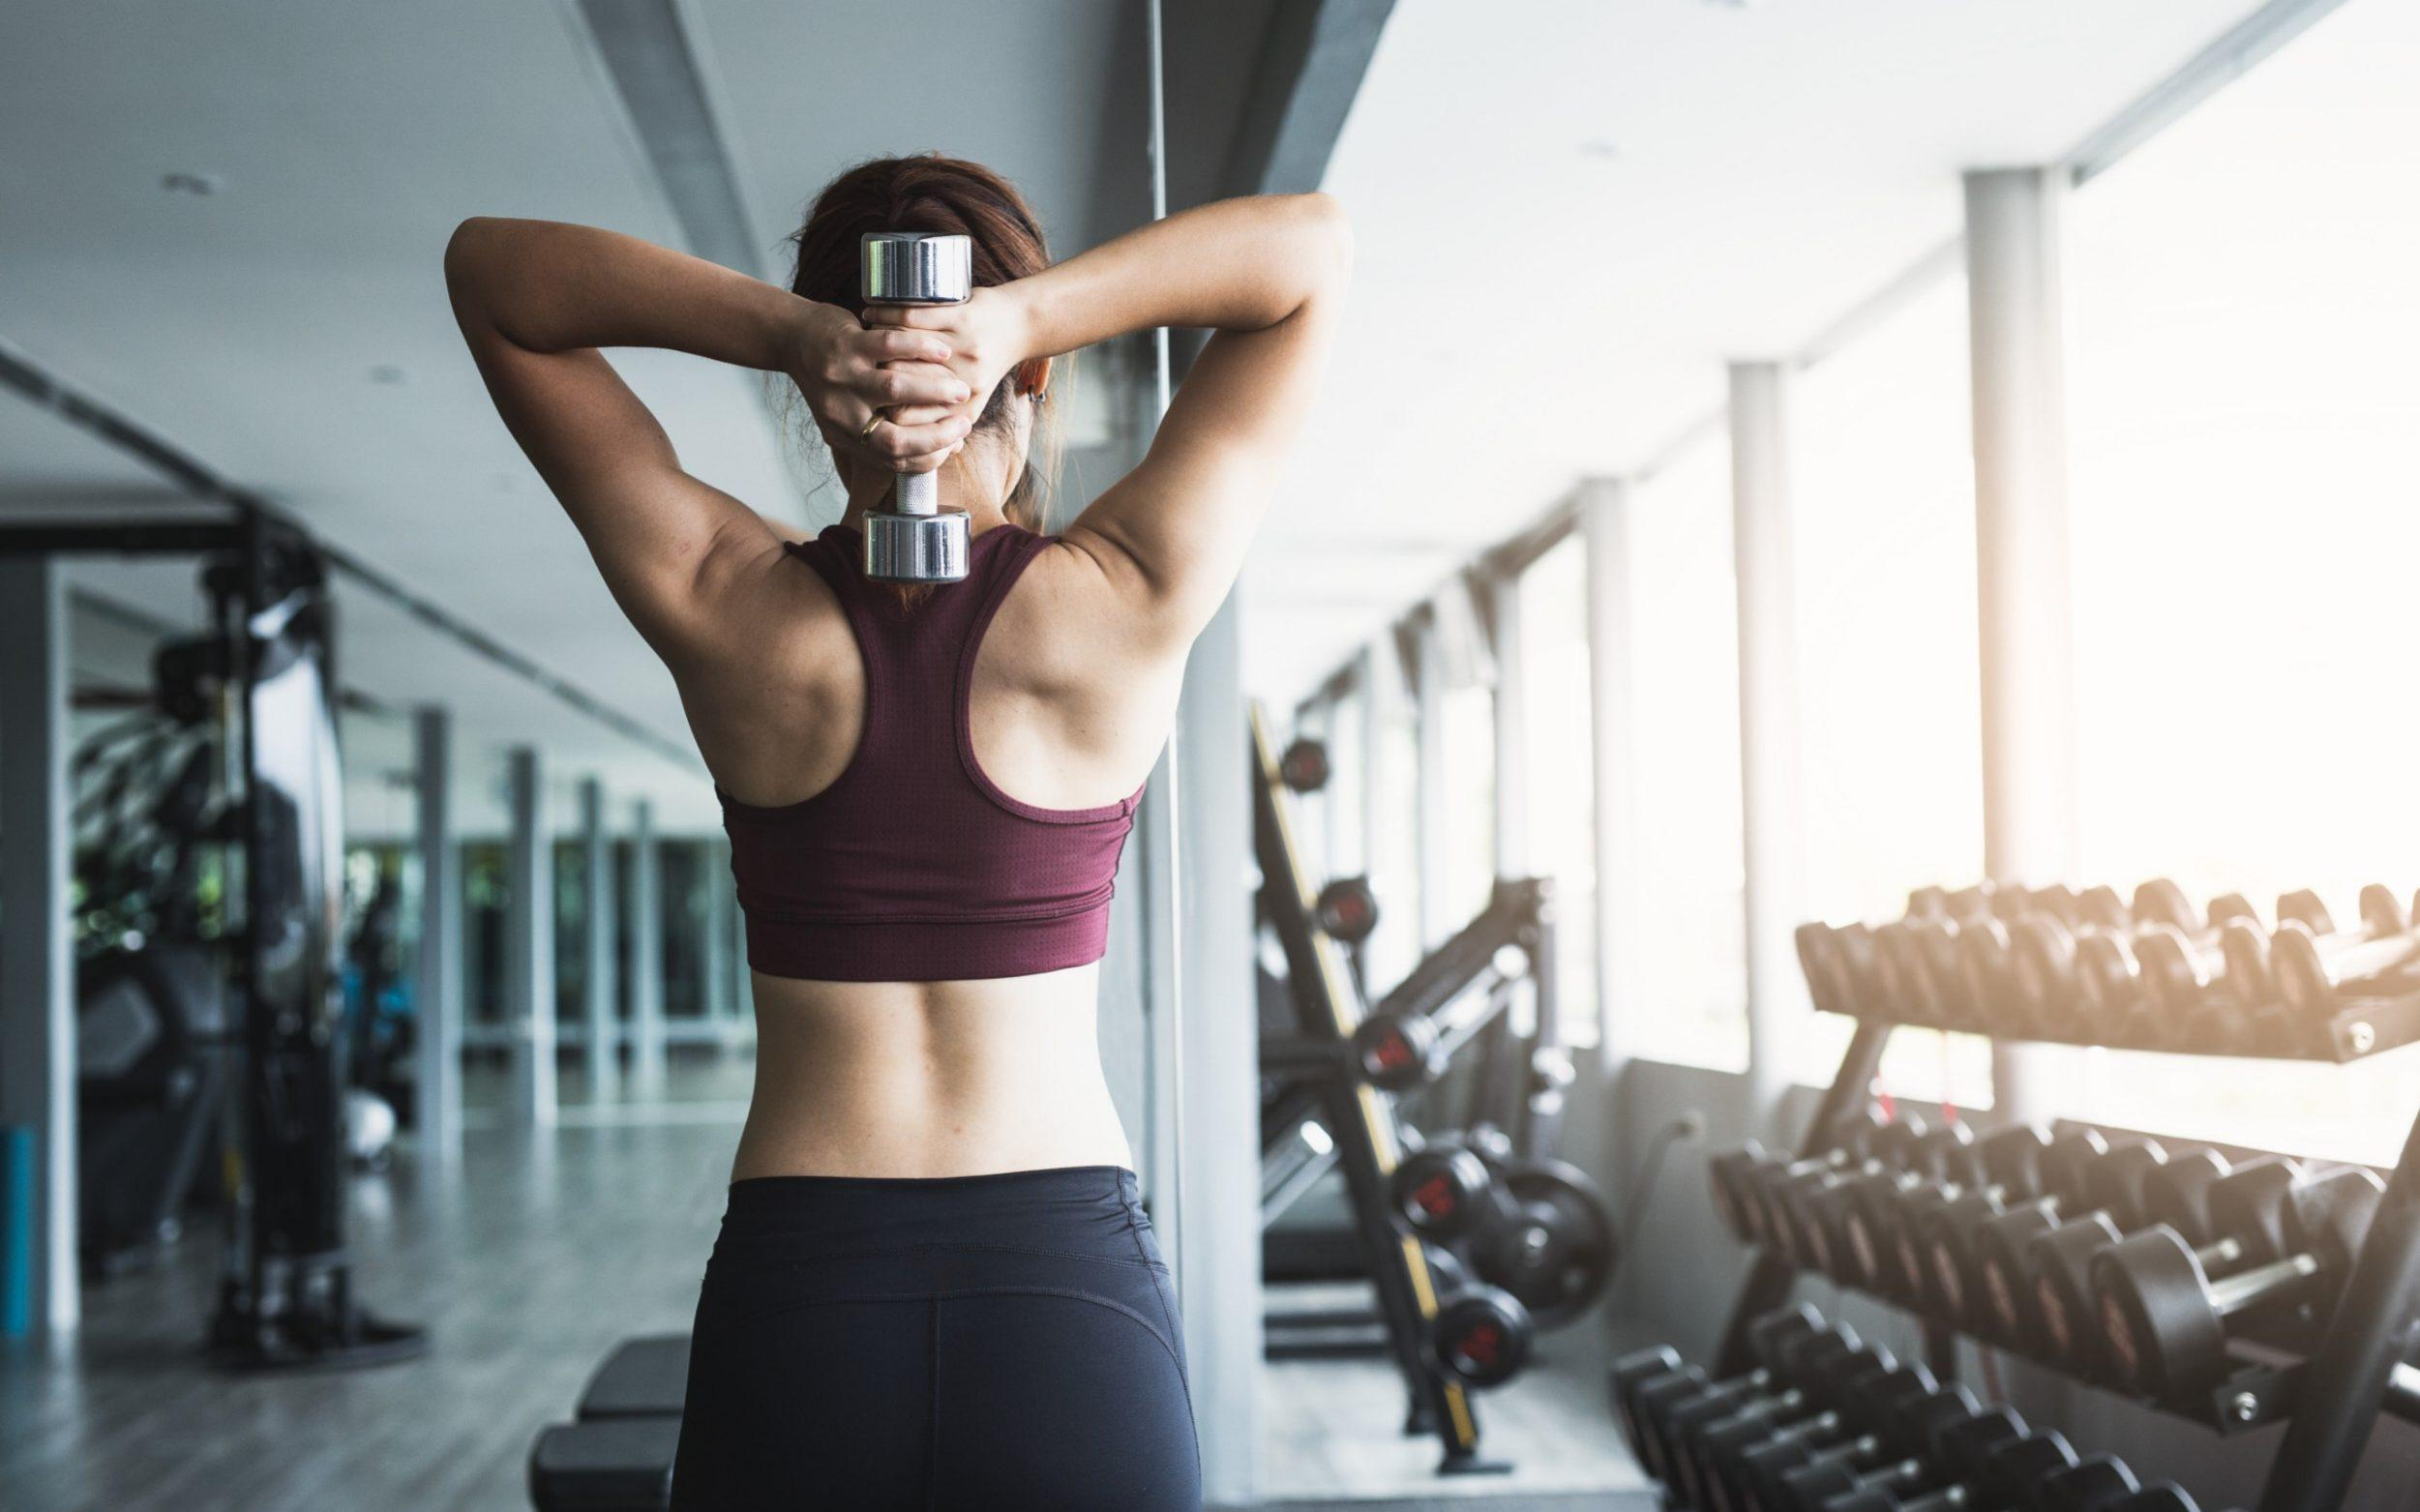 Women's health and fitness most at risk if leisure facilities stay closed